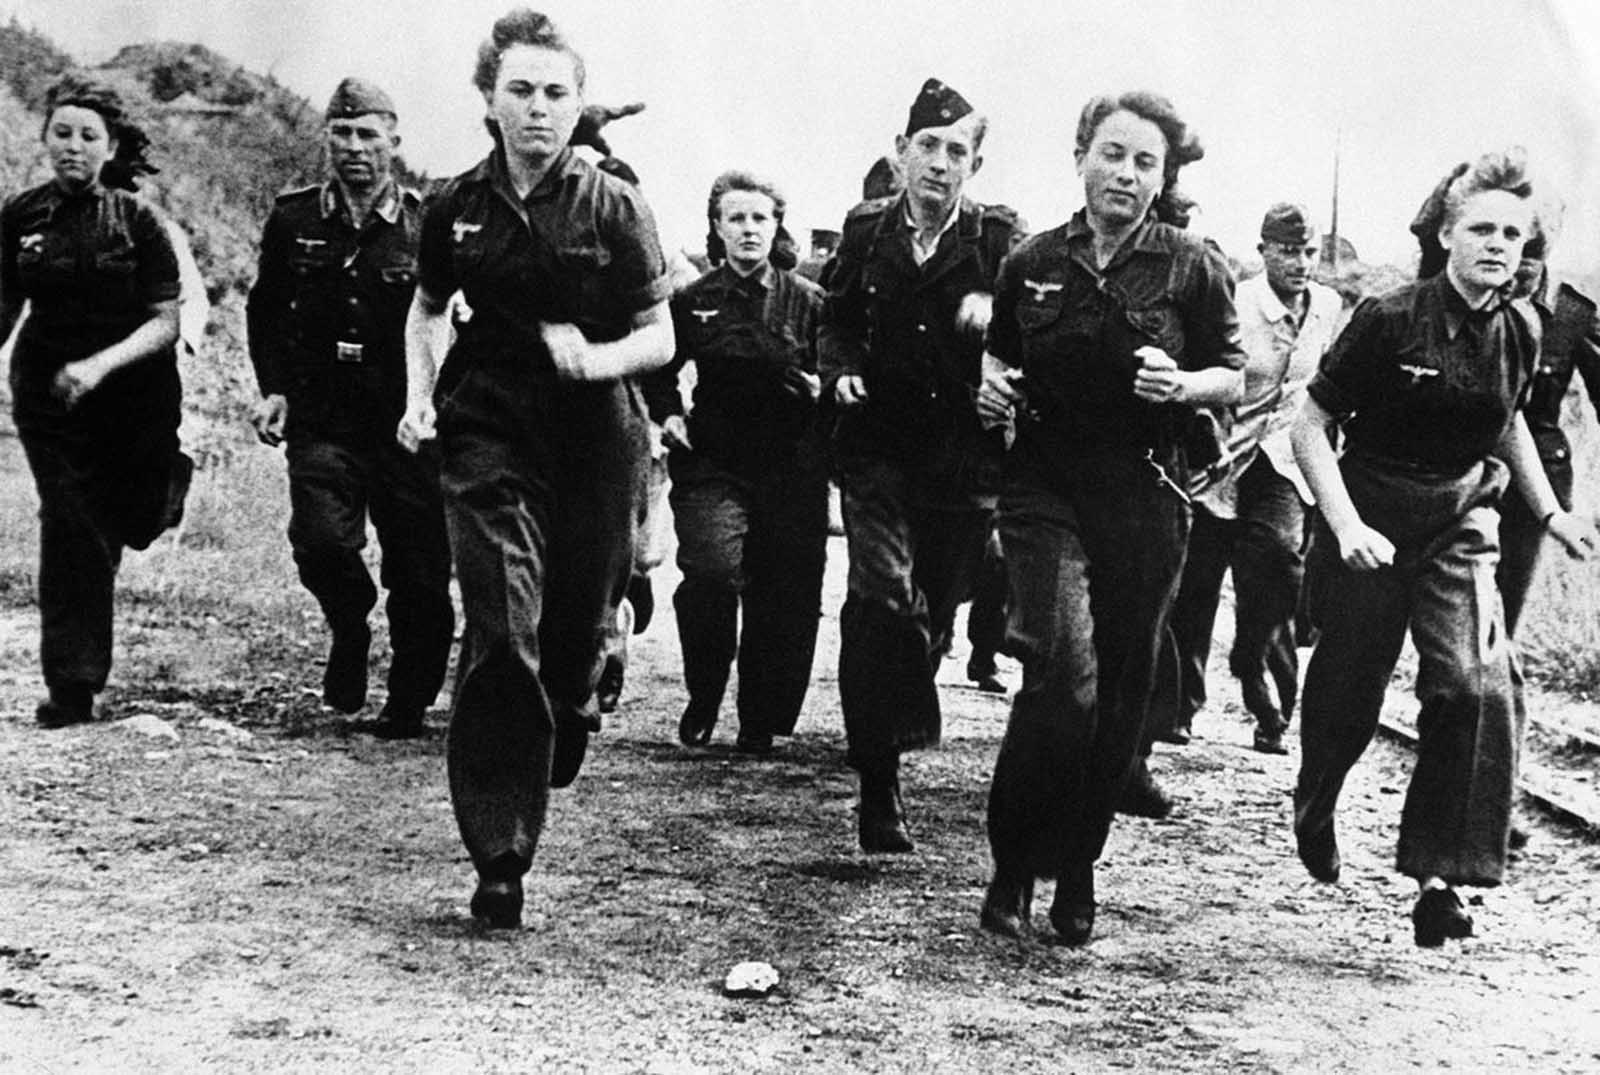 More and more girls are joining the Luftwaffe under Germany's total conscription campaign. They are replacing men transferred to the army to take up arms instead of planes against the advancing allied forces. Here, German girls are shown in training with men of the Luftwaffe, somewhere in Germany, on December 7, 1944.